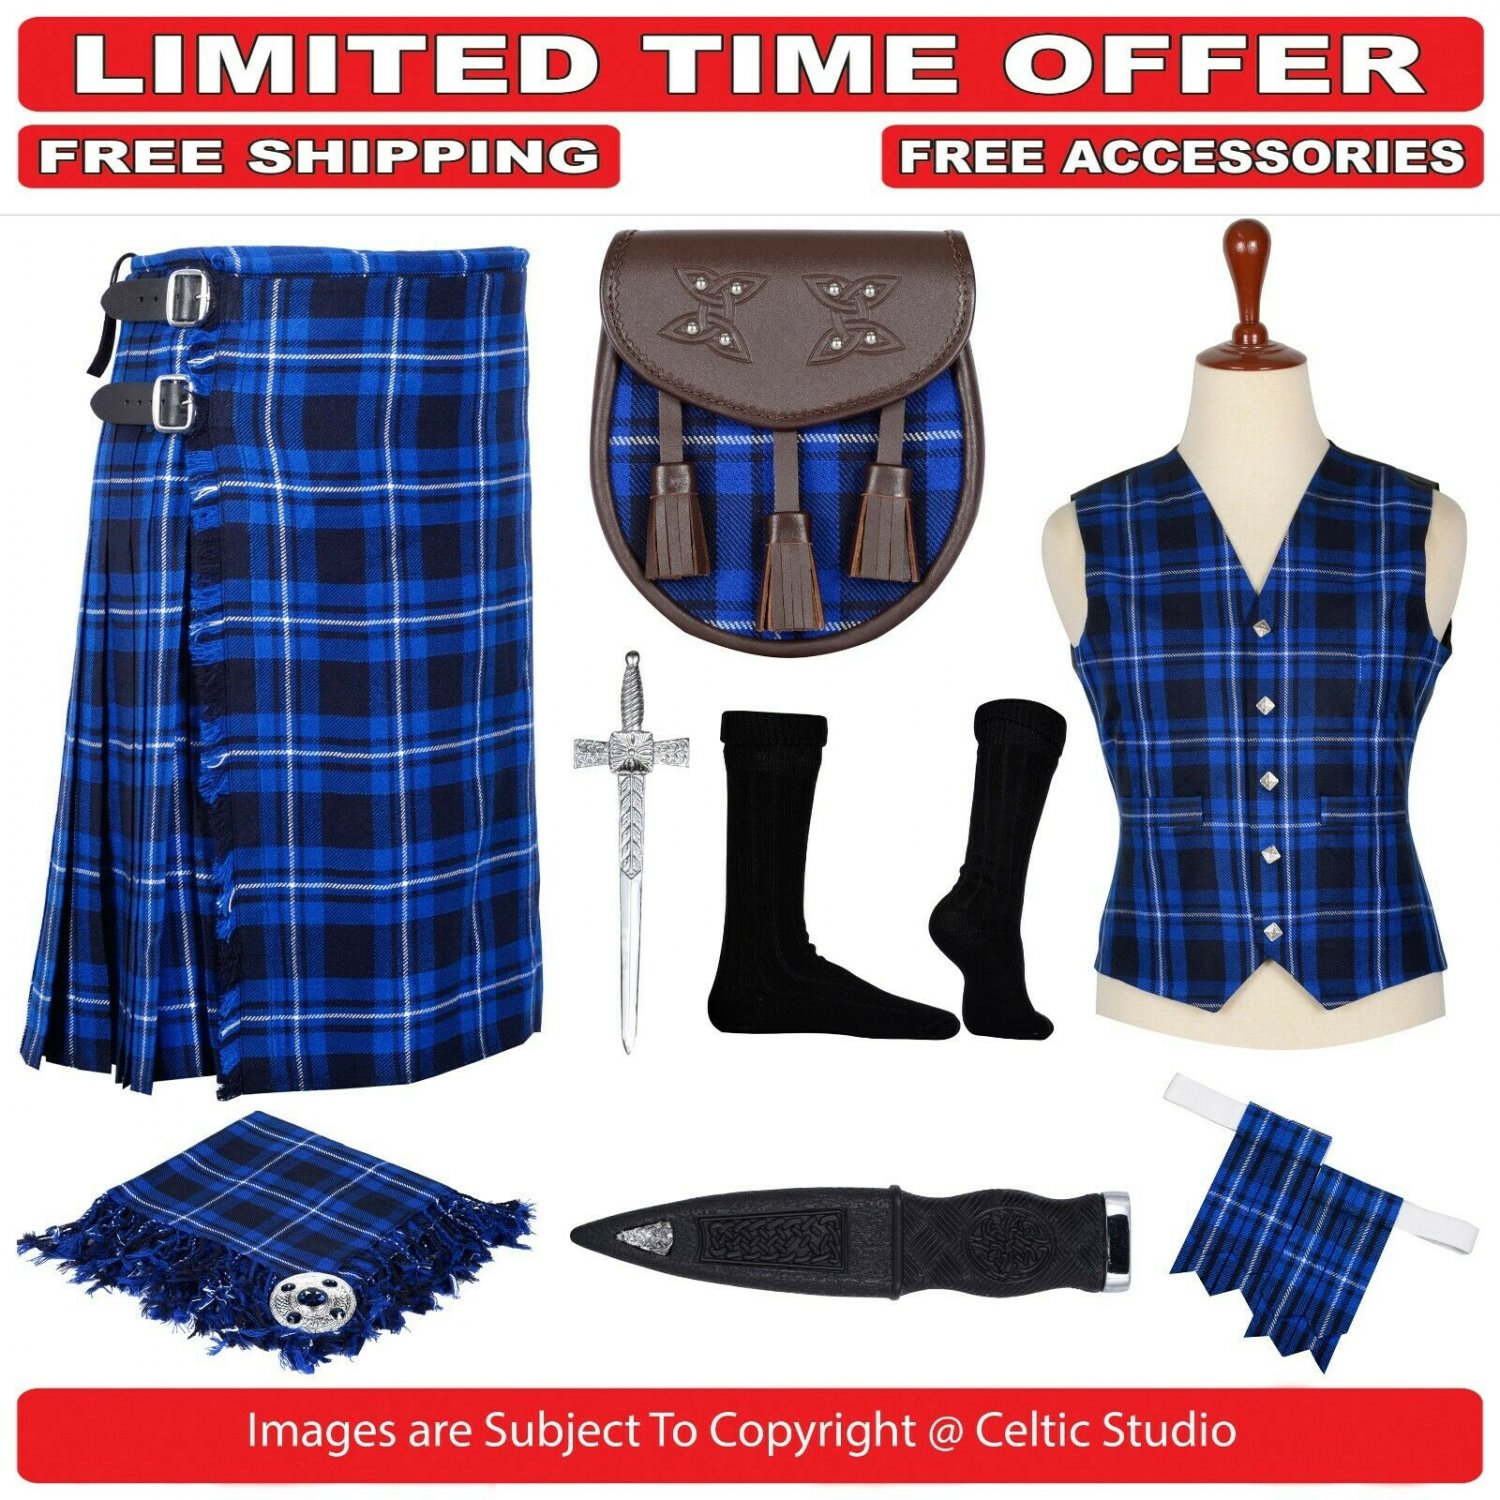 30 size Ramsey Blue Scottish Traditional Tartan Kilt With Free Shipping and 9 Accessories